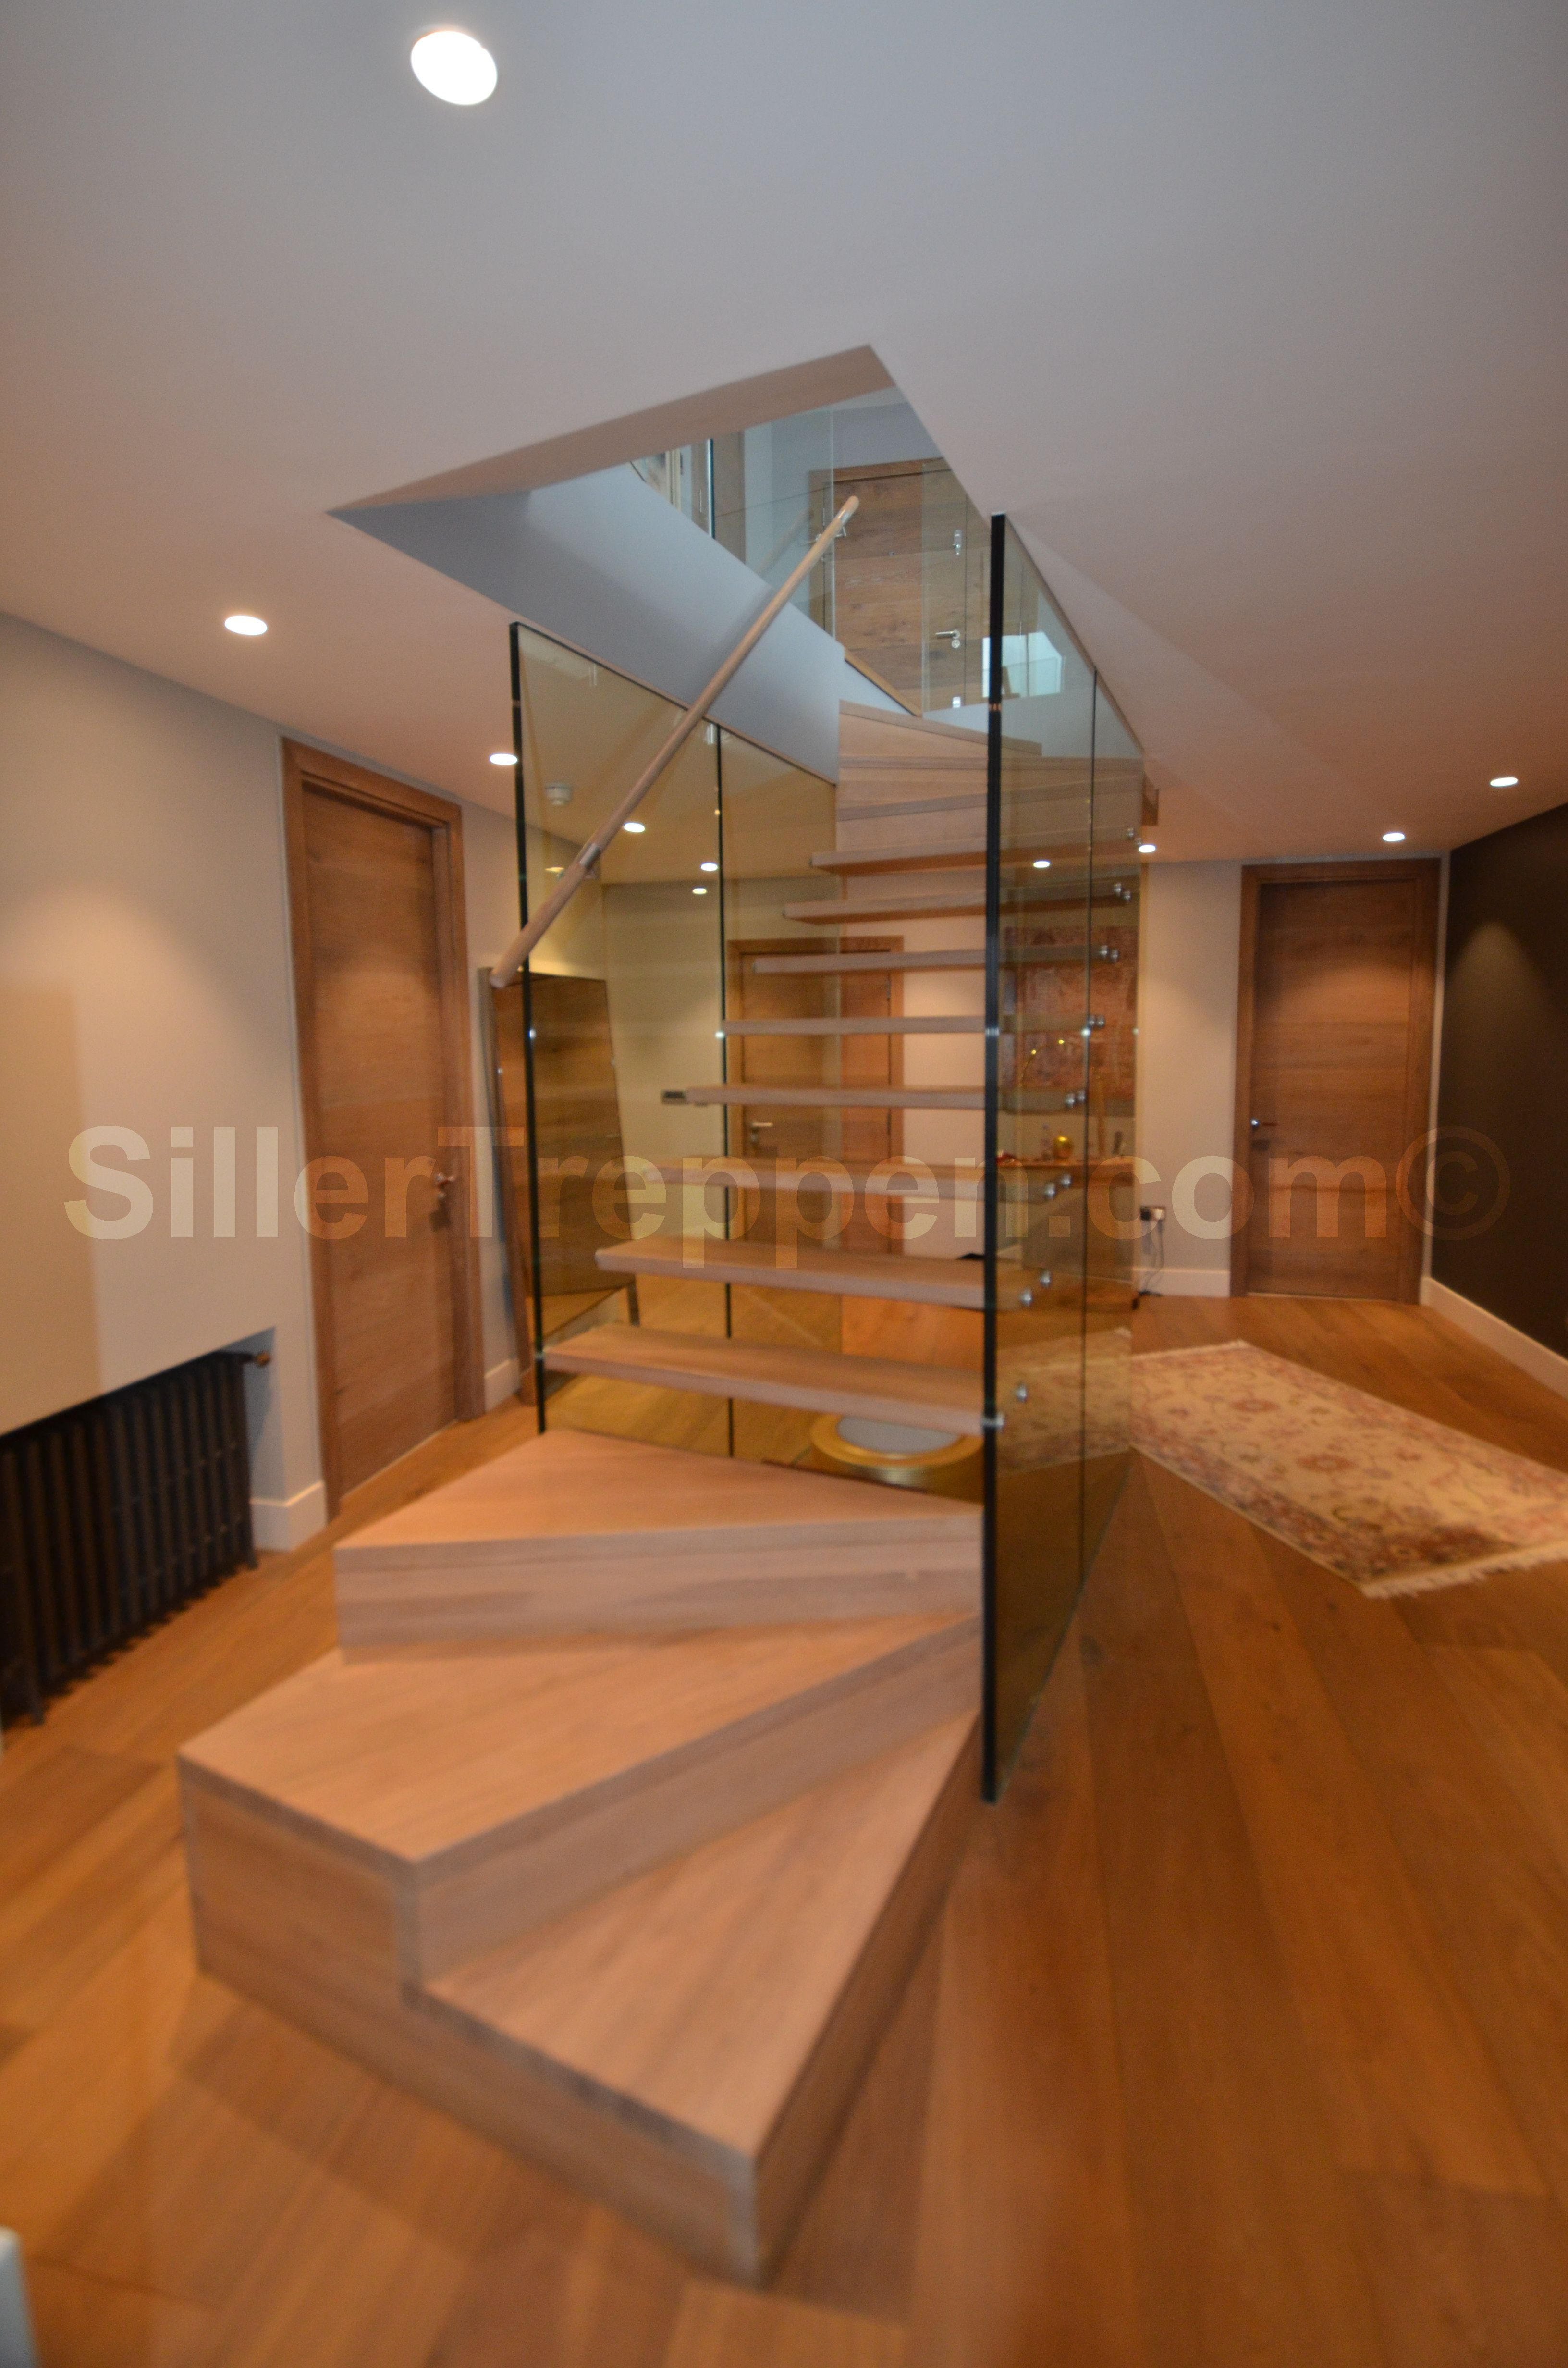 Best Floating Stairs With Glass Walls For Residential Project 400 x 300